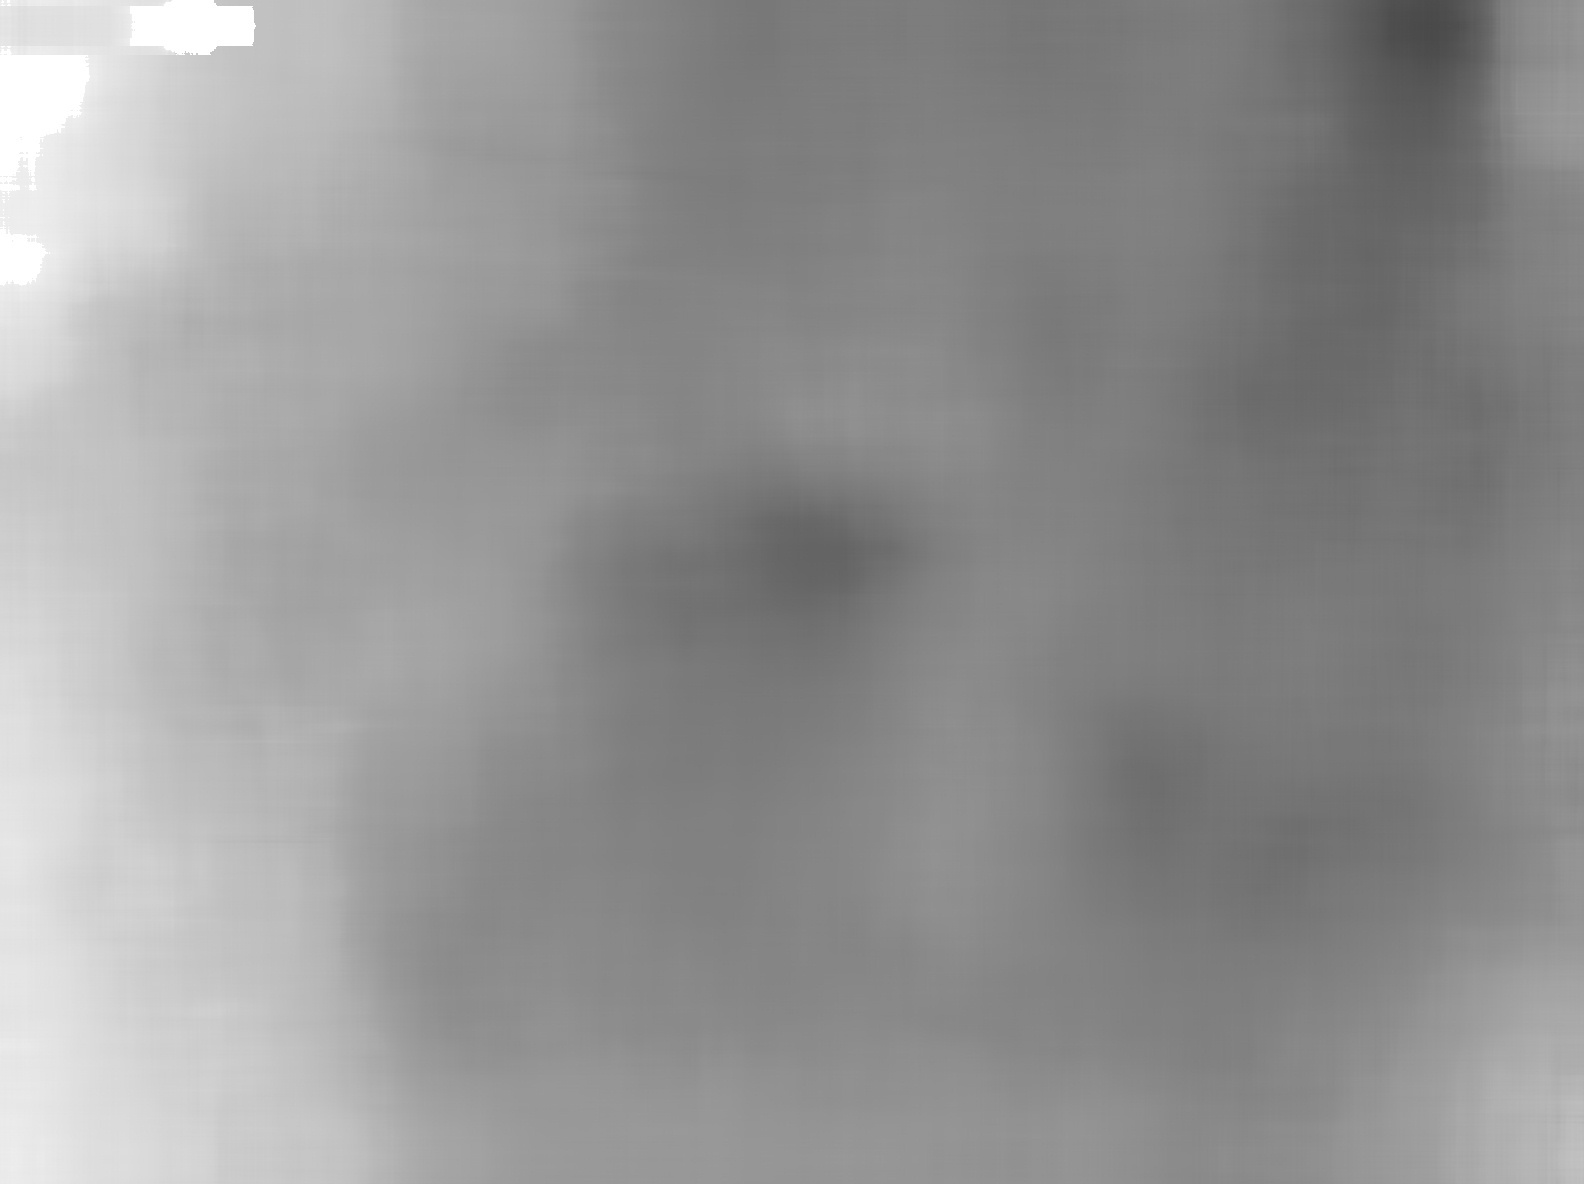 Nasa's Mars rover Curiosity acquired this image using its Mars Hand Lens Imager (MAHLI) on Sol 3015